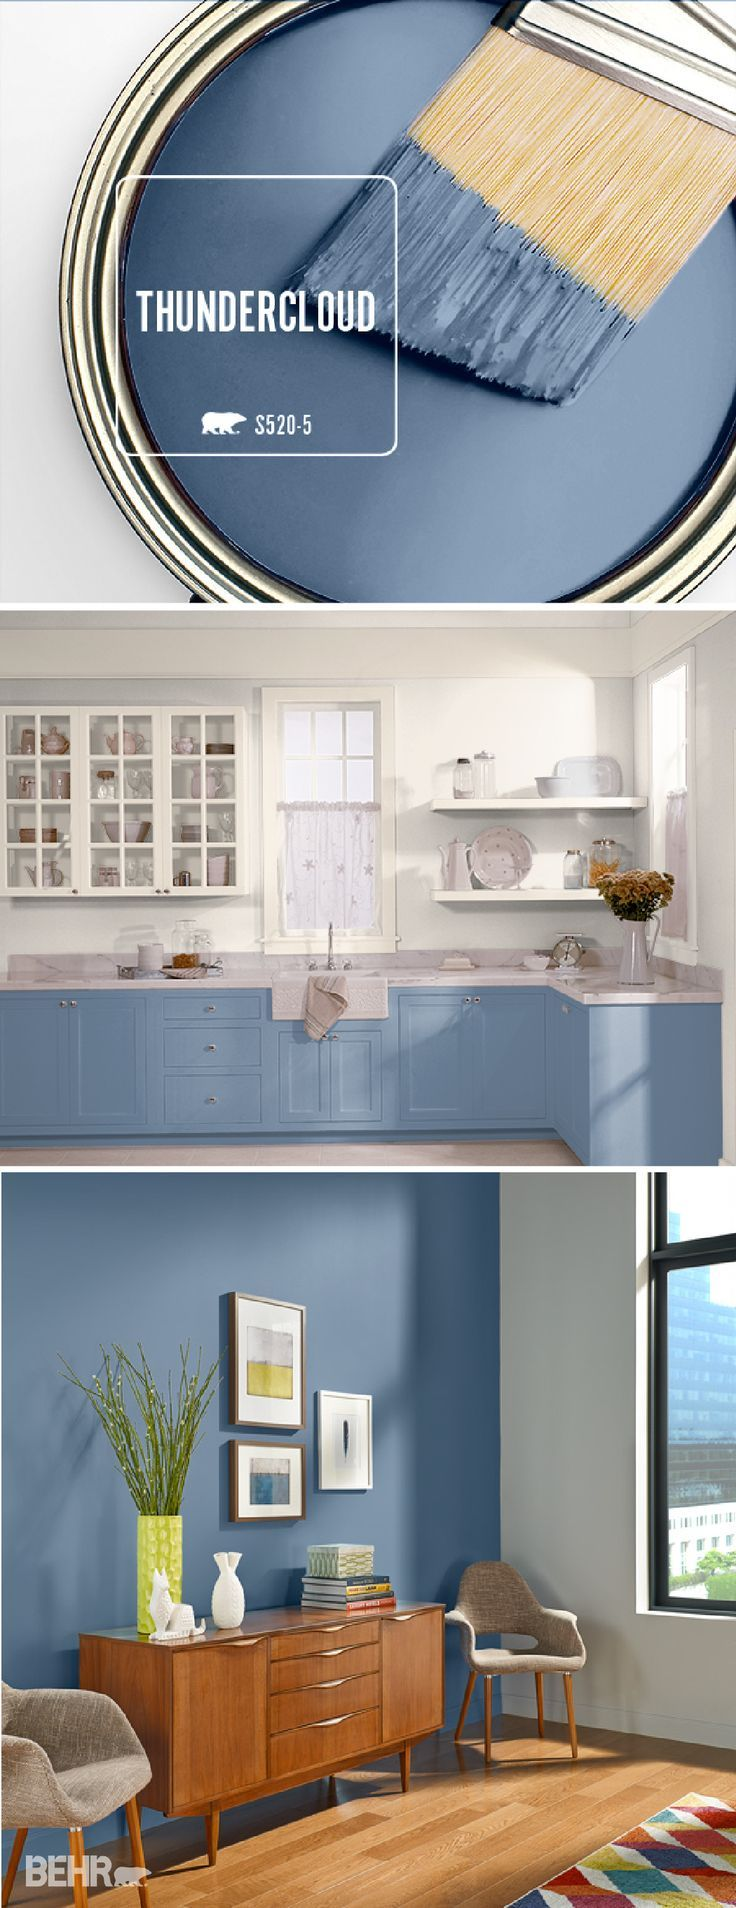 """Add sophistication to your home by incorporating Thundercloud into your bedroom, kitchen, or entryway. This deep blue BEHR Paint color will look great on an accent wall or kitchen cabinets for a pop of color! <a class=""""pintag searchlink"""" data-query=""""#TrueToHue"""" data-type=""""hashtag"""" href=""""/search/?q=#TrueToHue&rs=hashtag"""" rel=""""nofollow"""" title=""""#TrueToHue search Pinterest"""">#TrueToHue</a>"""